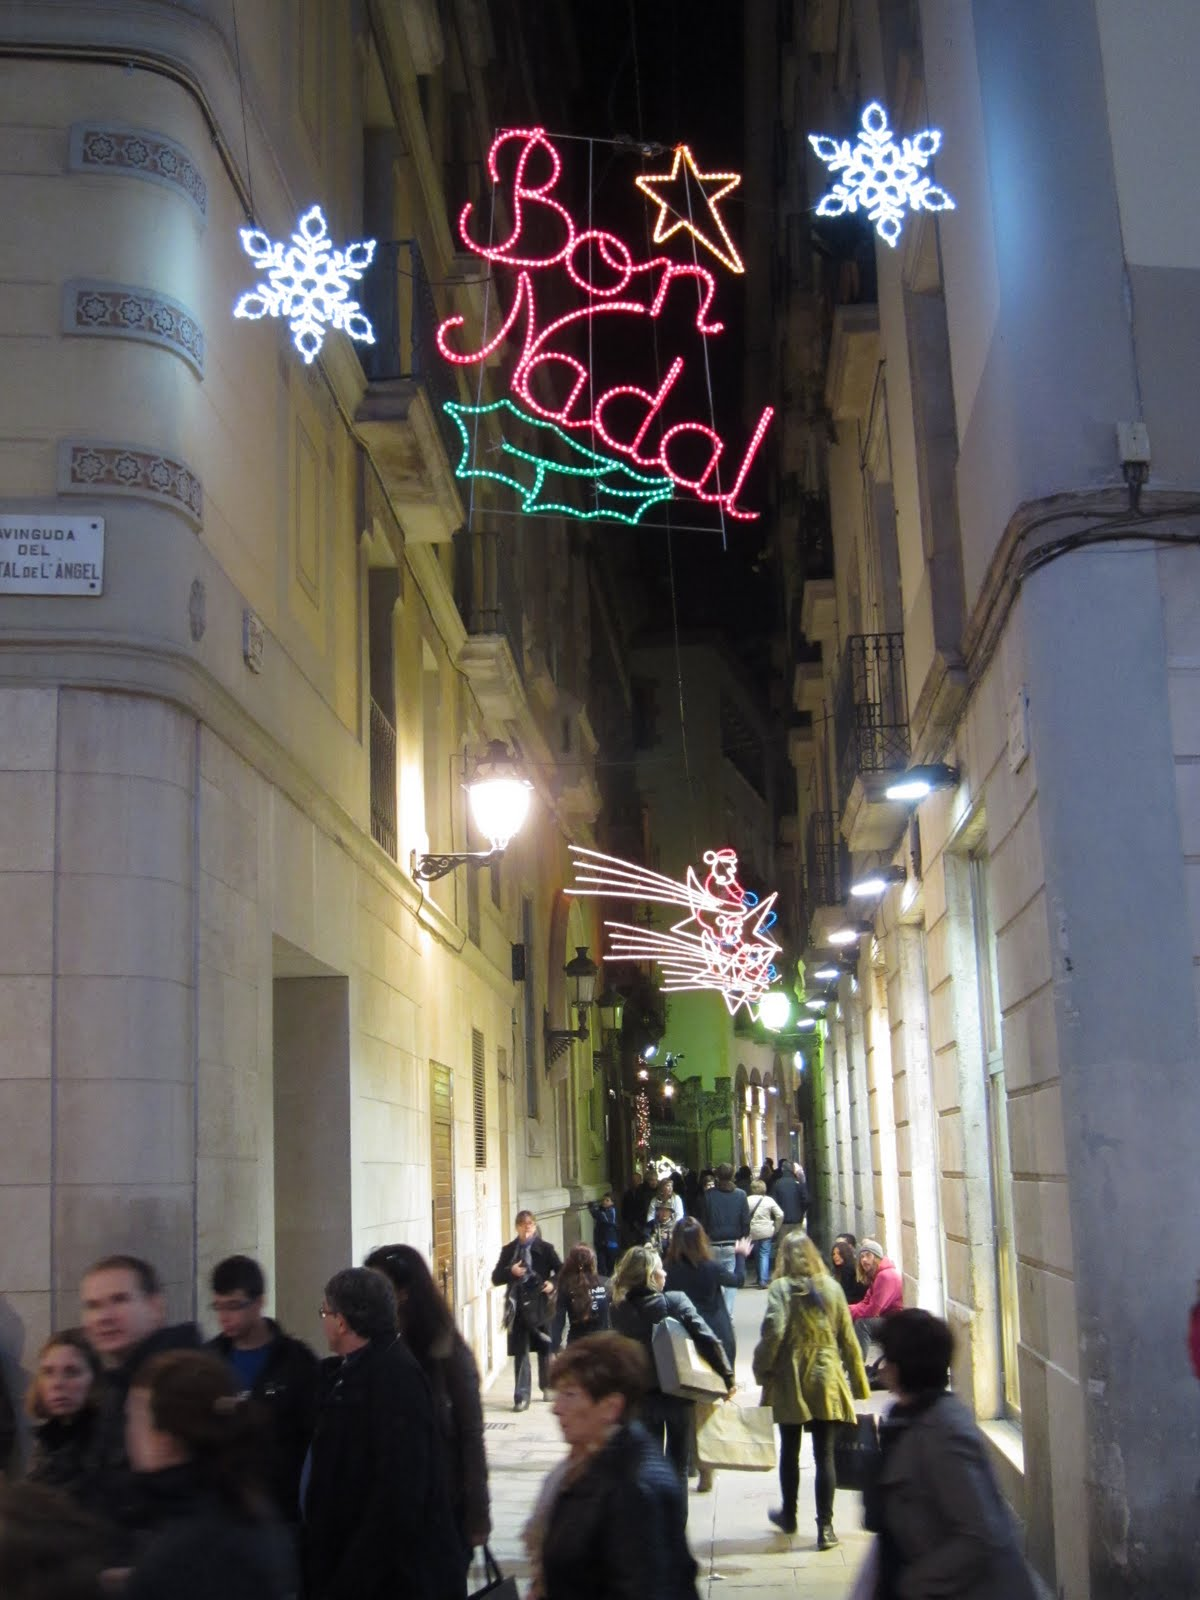 bon nadal meaning